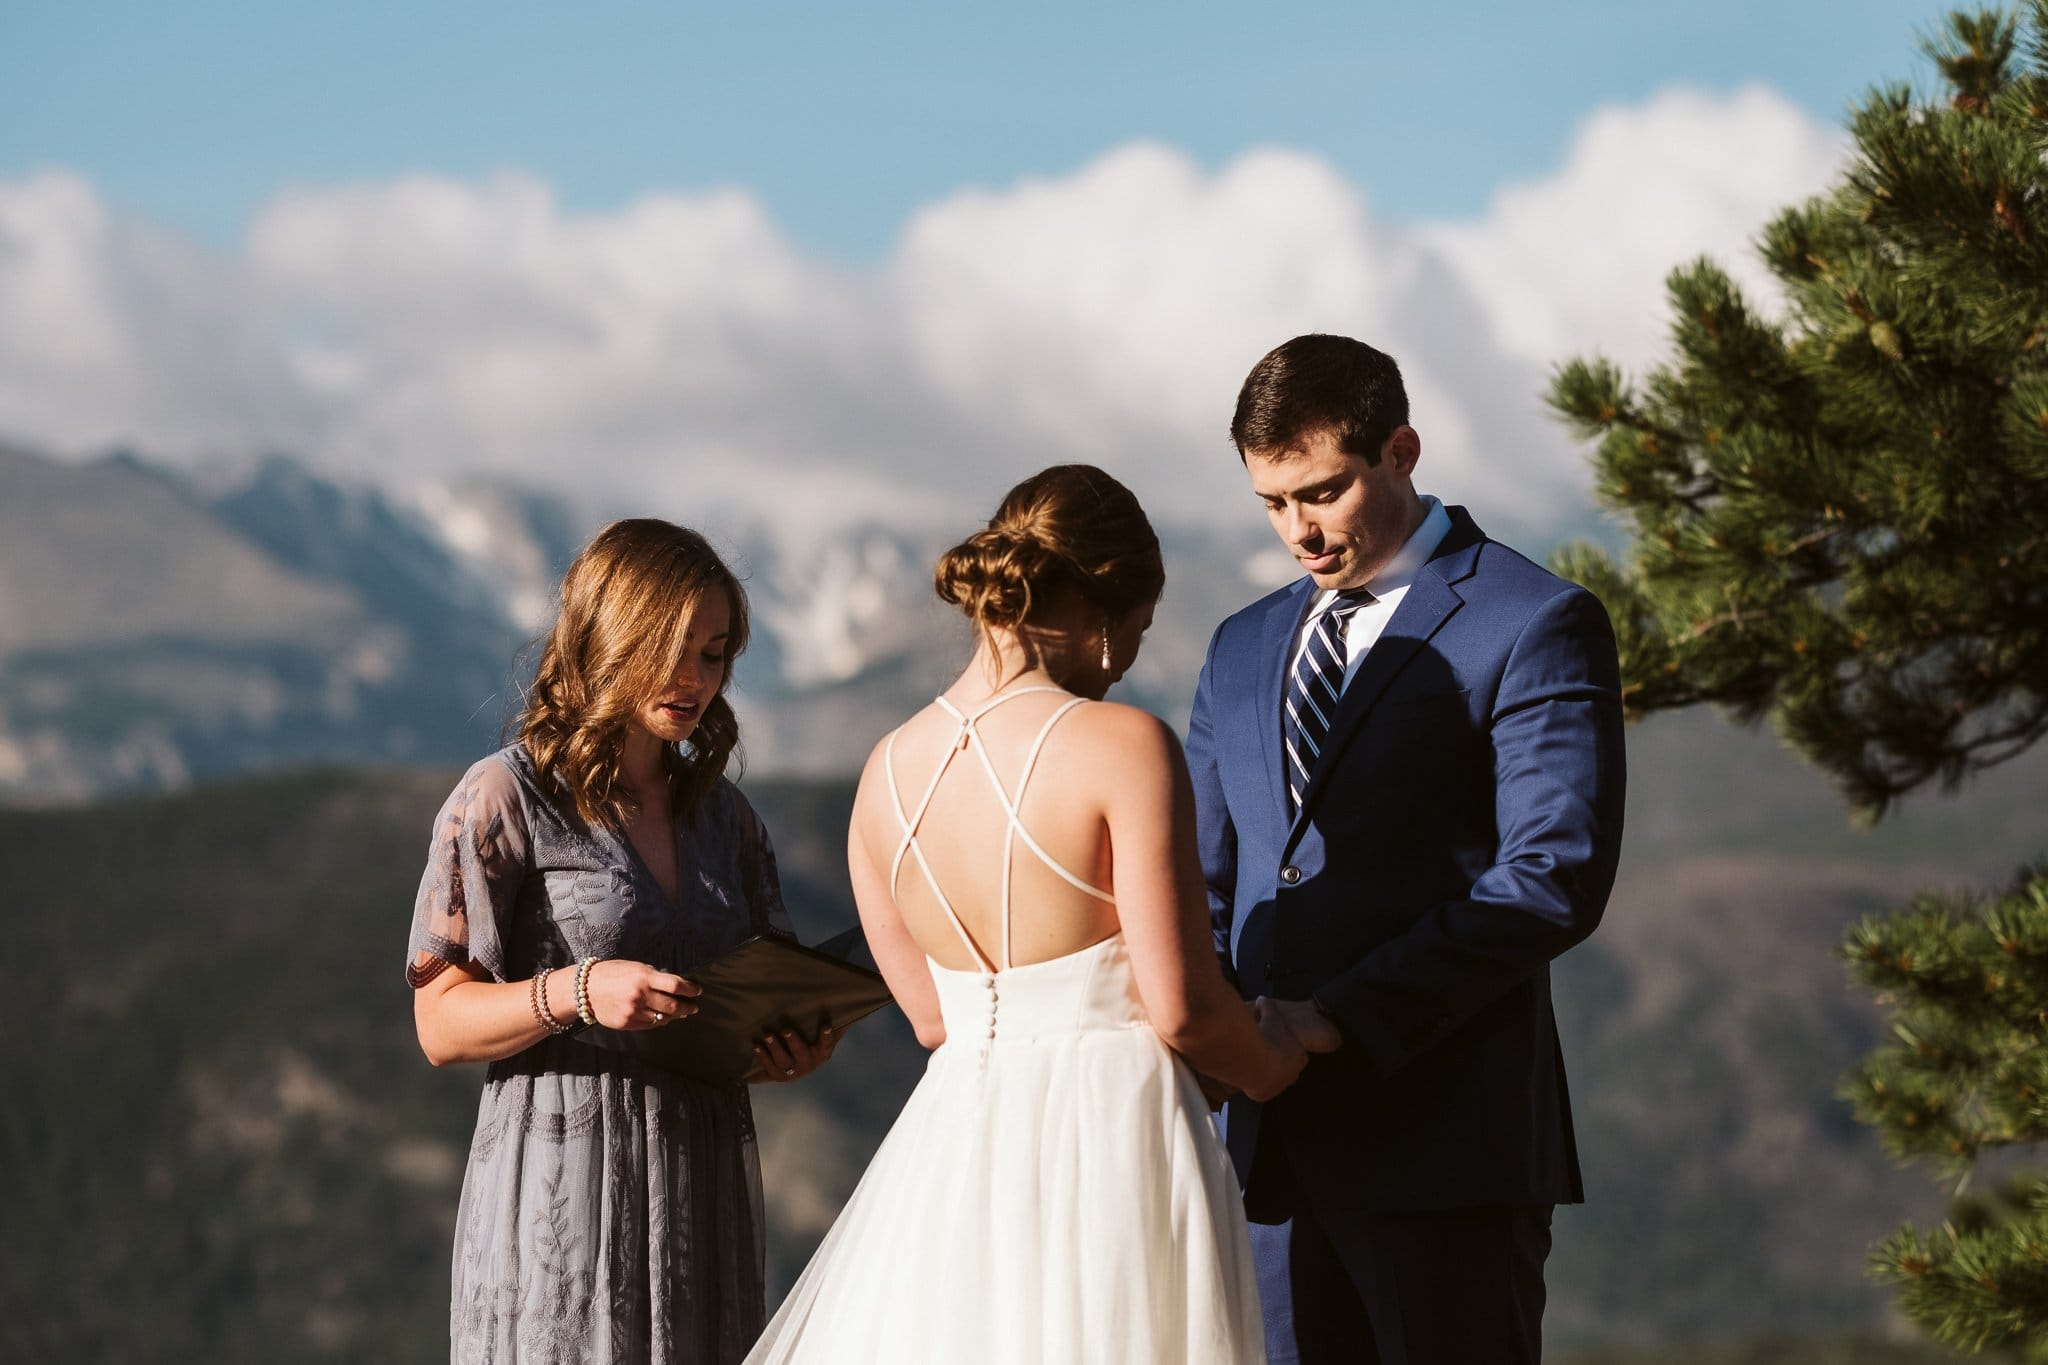 Elopement ceremony at 3M Curve in Rocky Mountain National Park